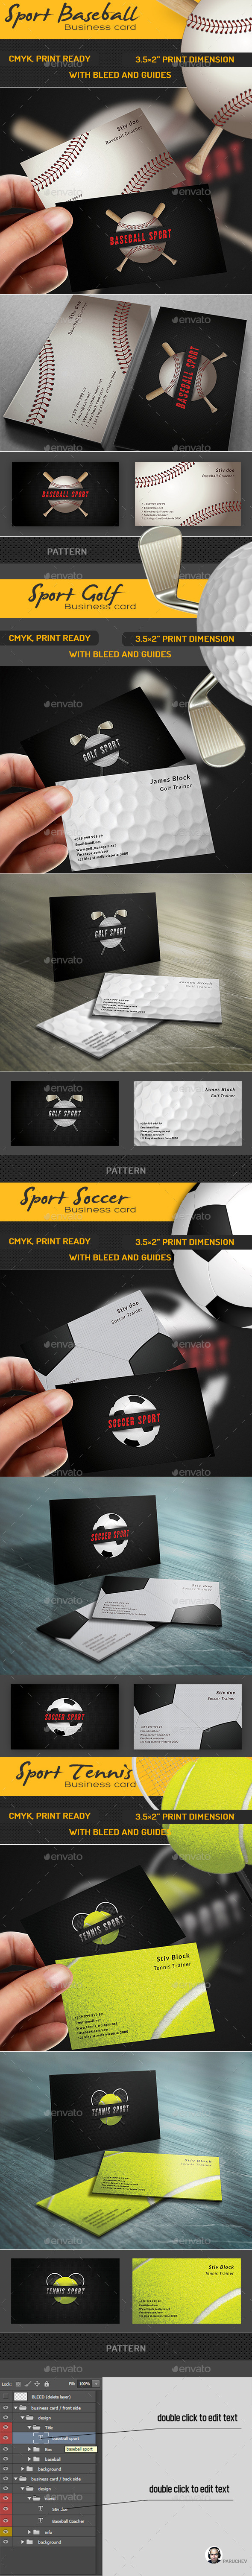 Sport Business Card Pack - Industry Specific Business Cards